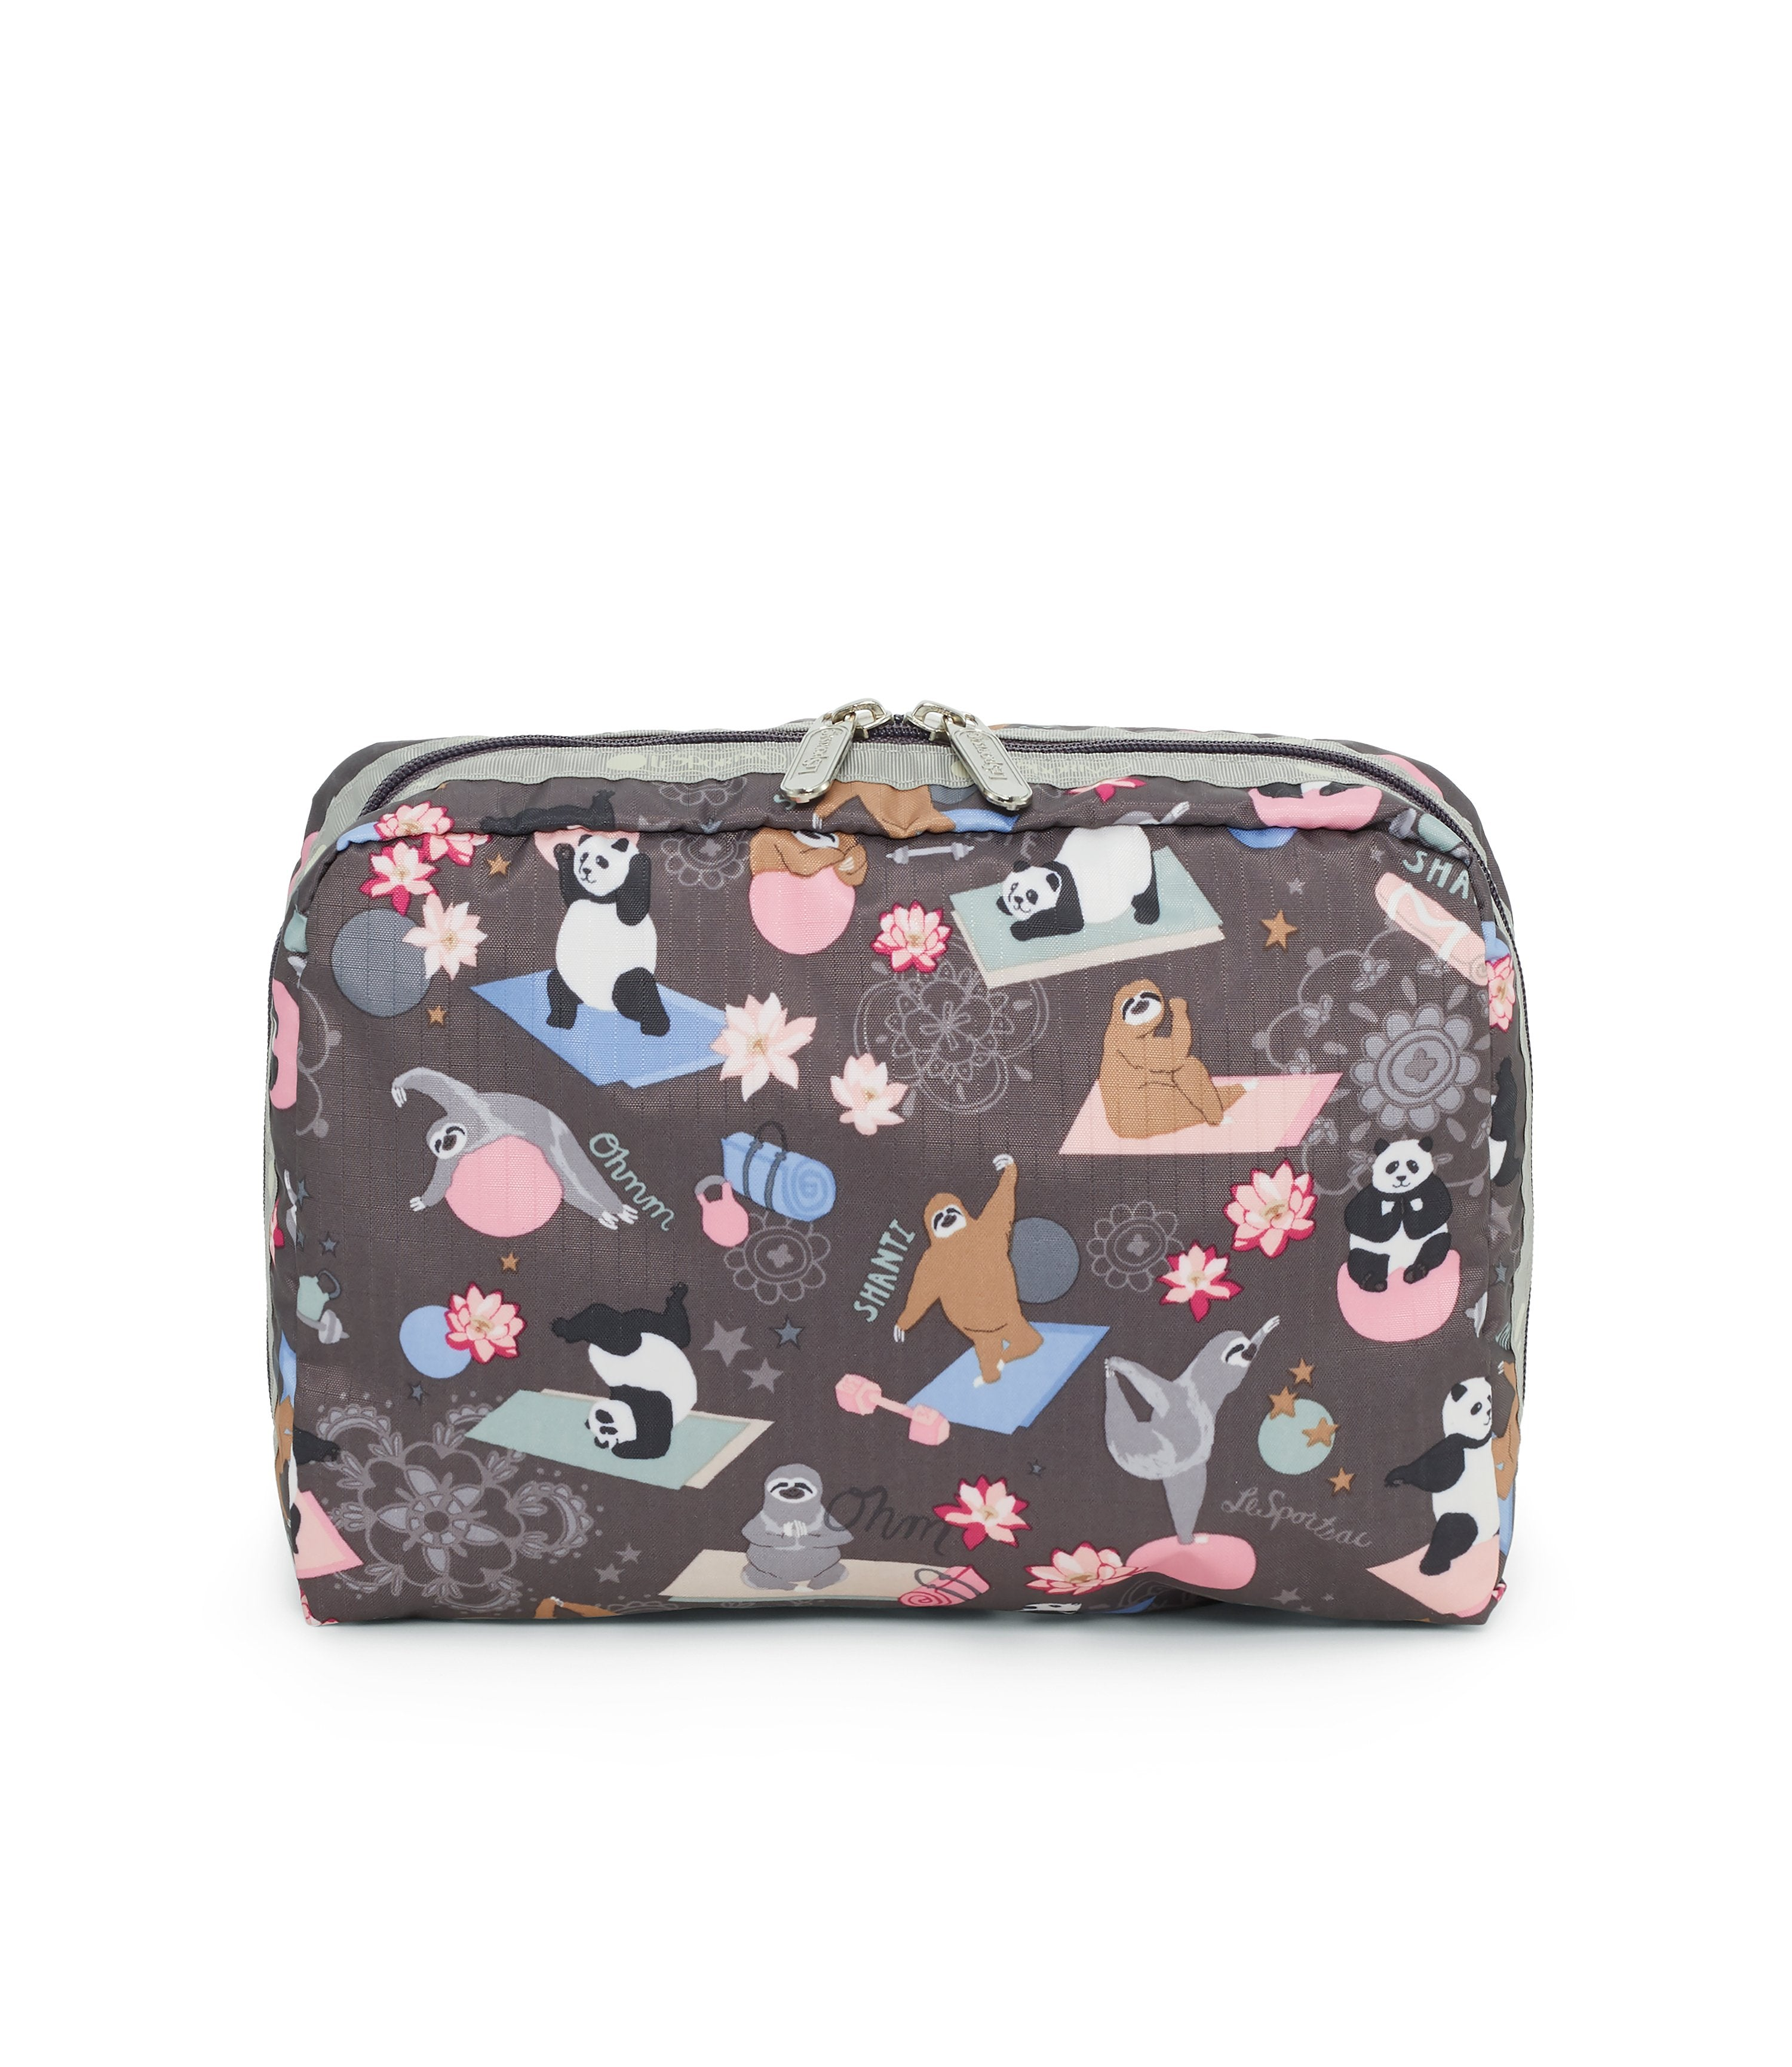 XL Rectangular Cosmetic, Accessories and Cosmetic Bag, LeSportsac, Tolietry Bag, Yoga Pets print